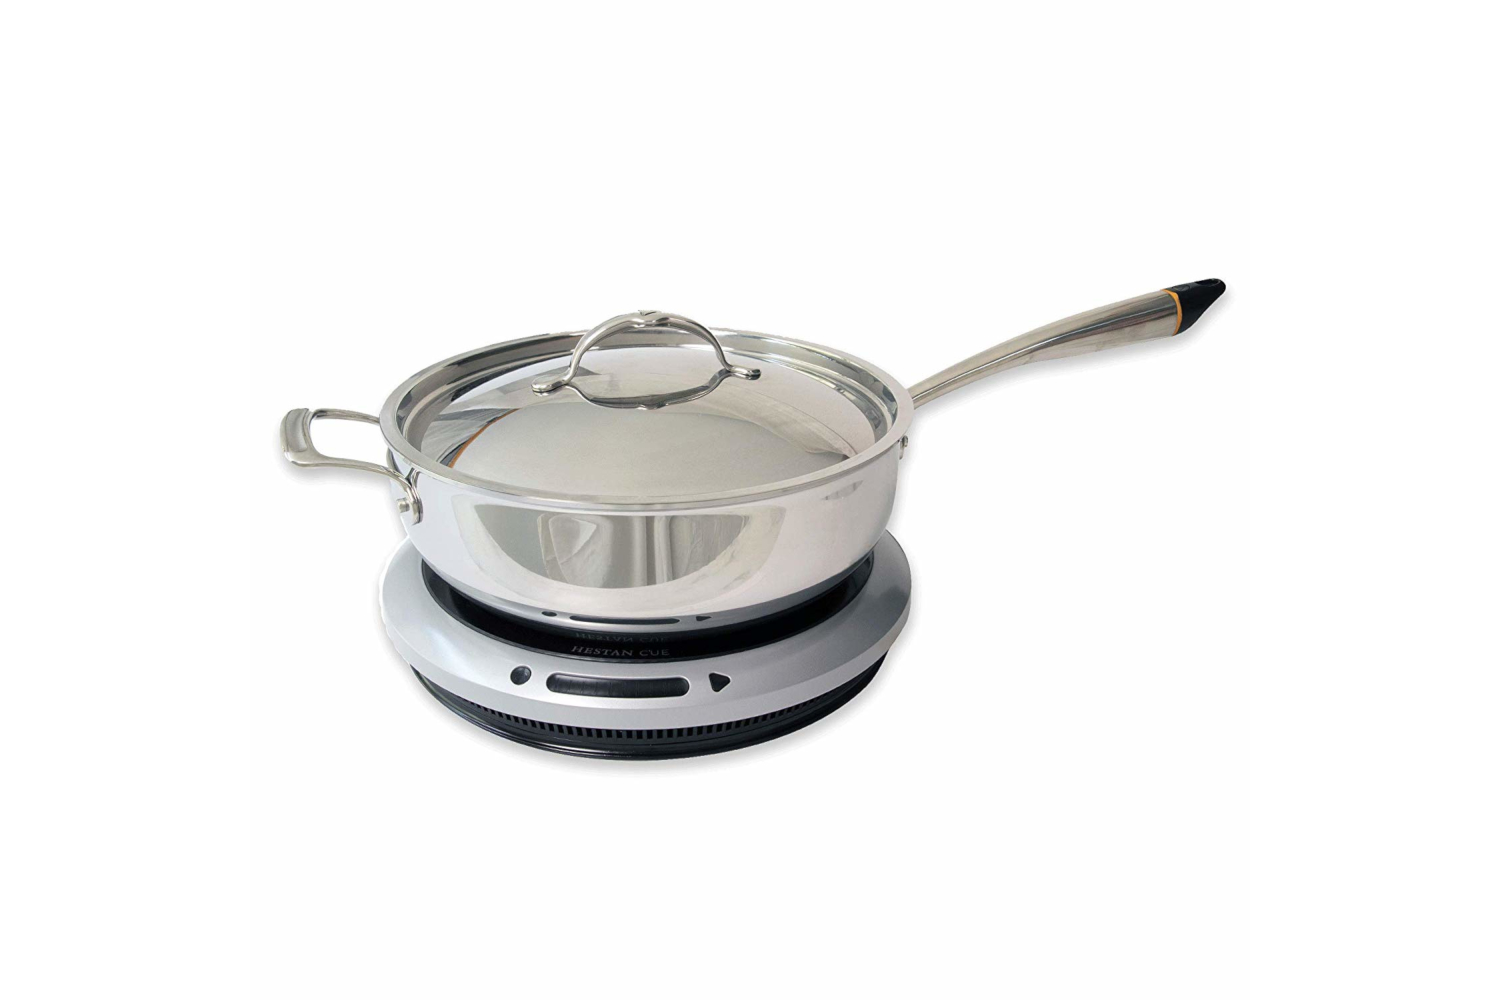 Hestan Cue Chef's Pot + Burner Smart Cooking System (Gen 2)